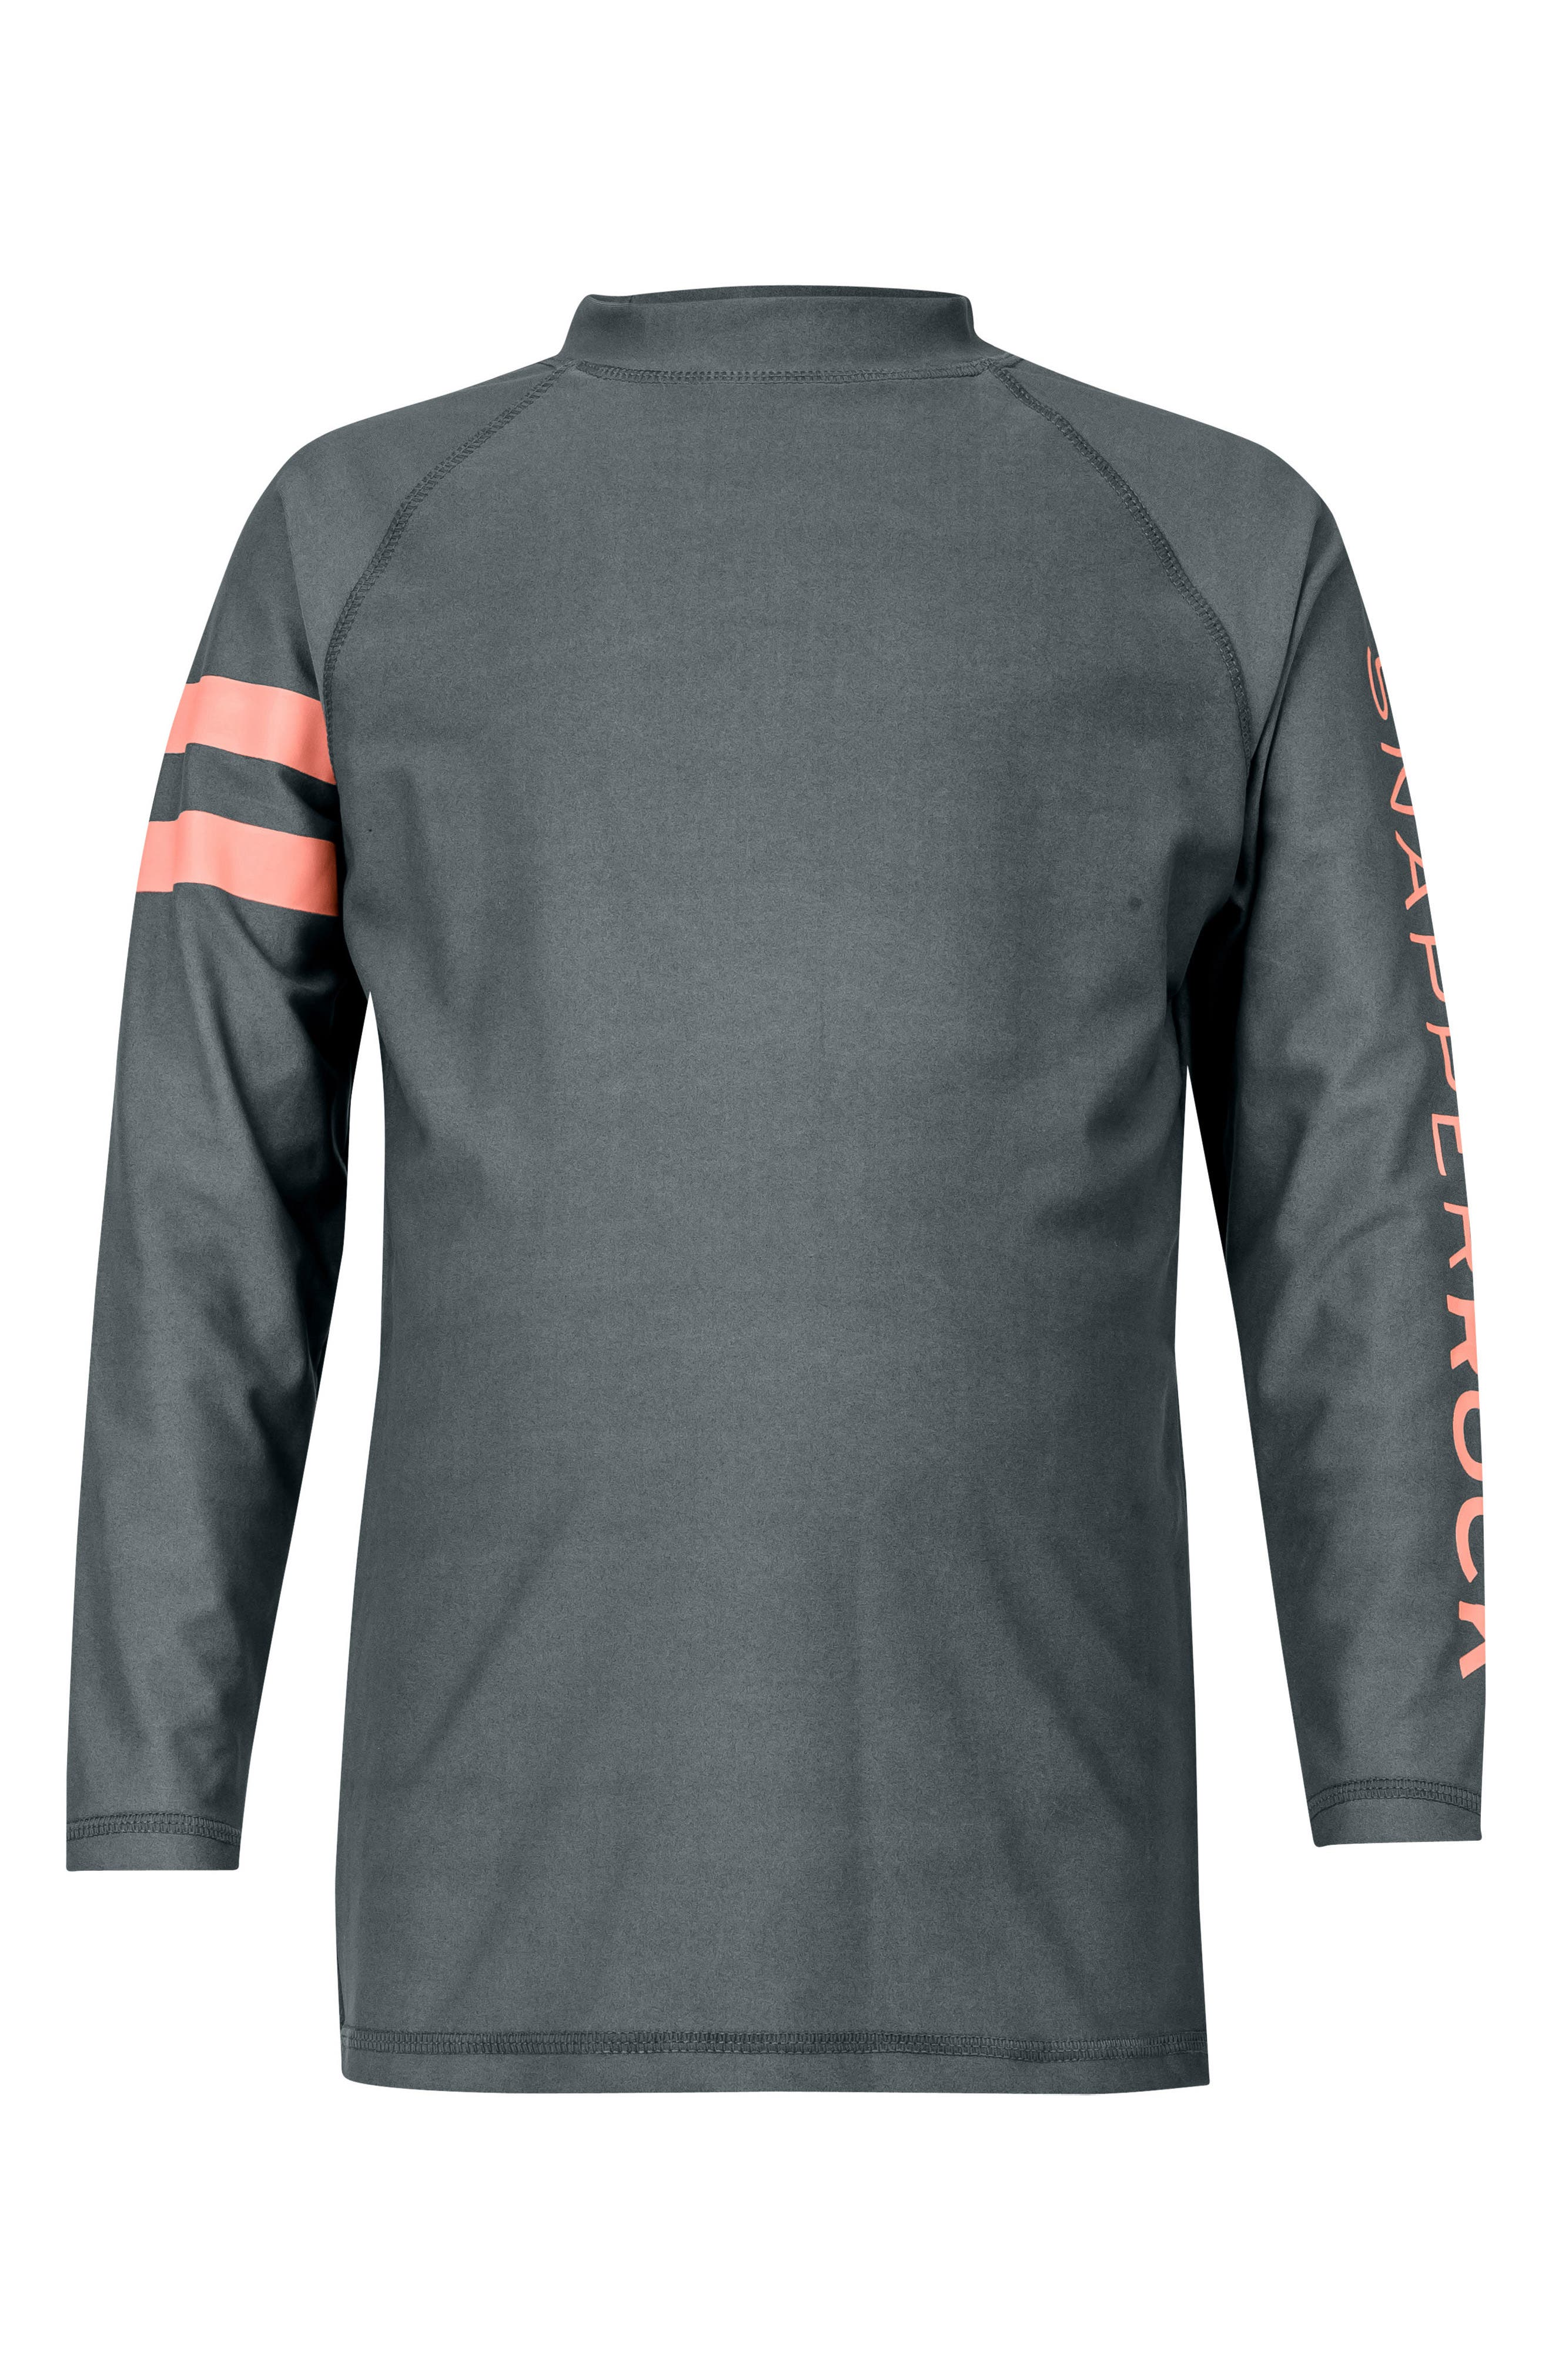 SNAPPER ROCK Raglan Long Sleeve Rashguard, Main, color, 030